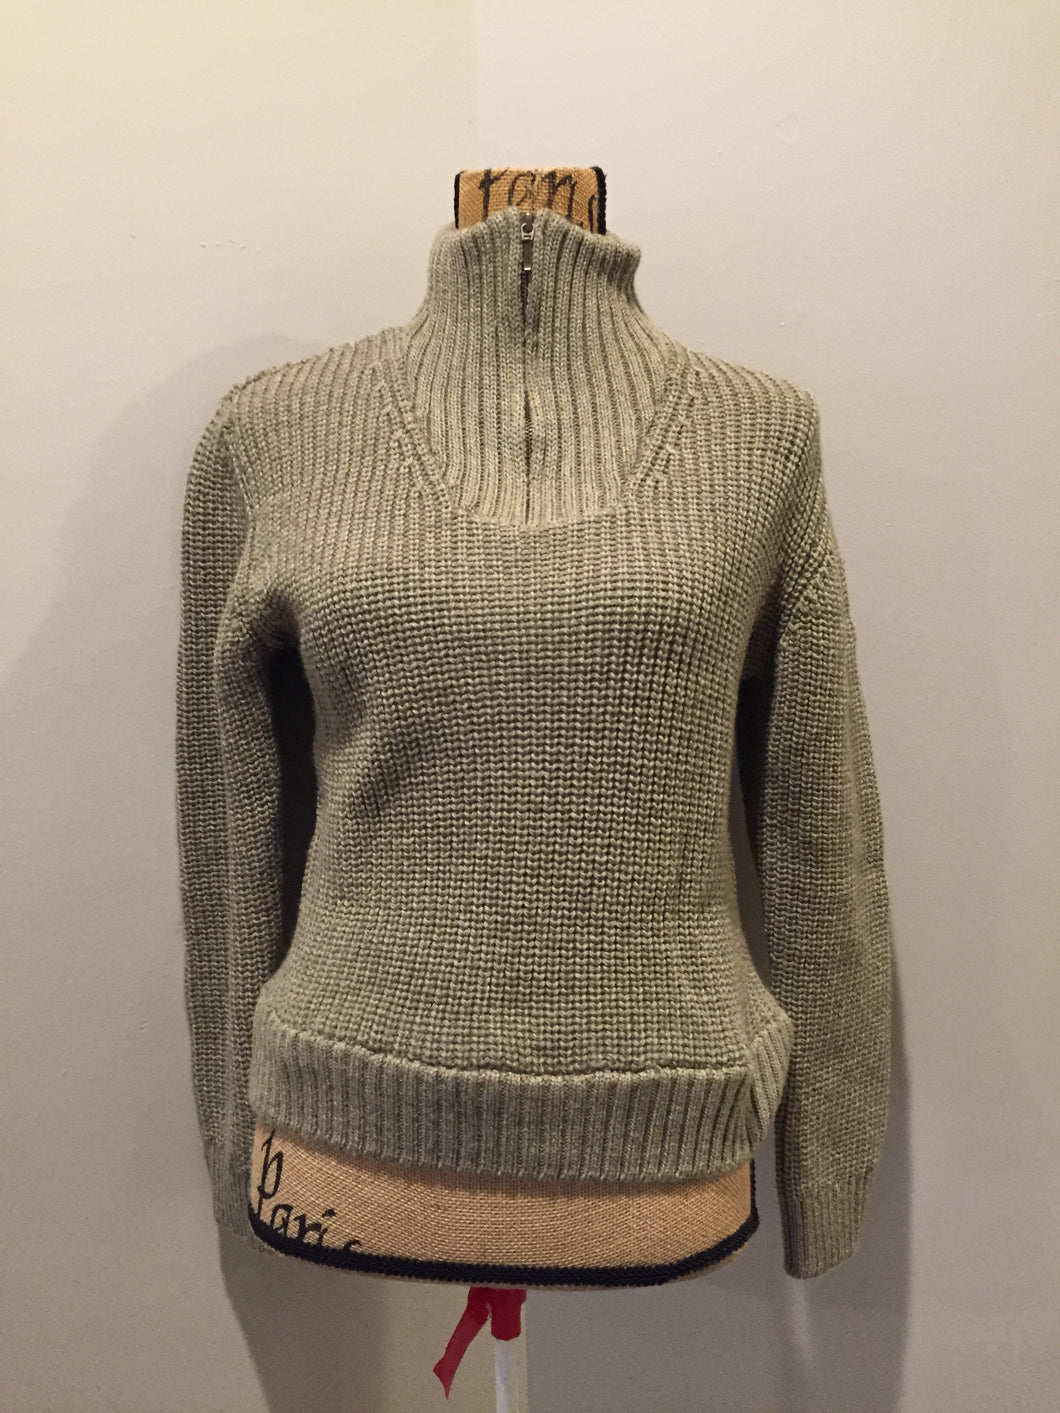 "Aran ribbed knit merino wool sweater. Made in Ireland. Size small. *Bonus* From the TV show ""Man in the High Castle"" stock."